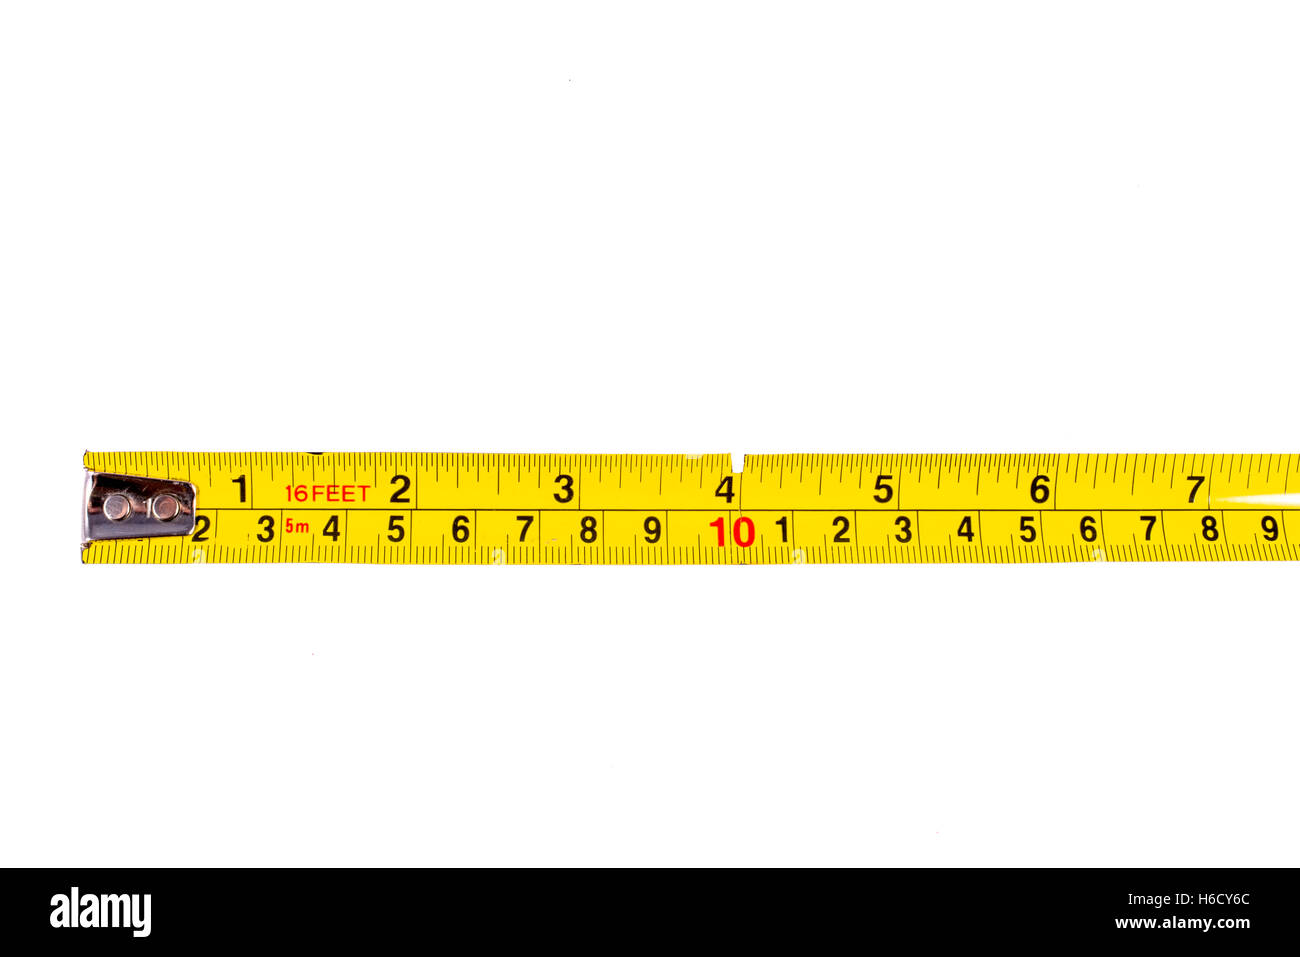 A close-up shot of a tape measure ruler over a white background. - Stock Image